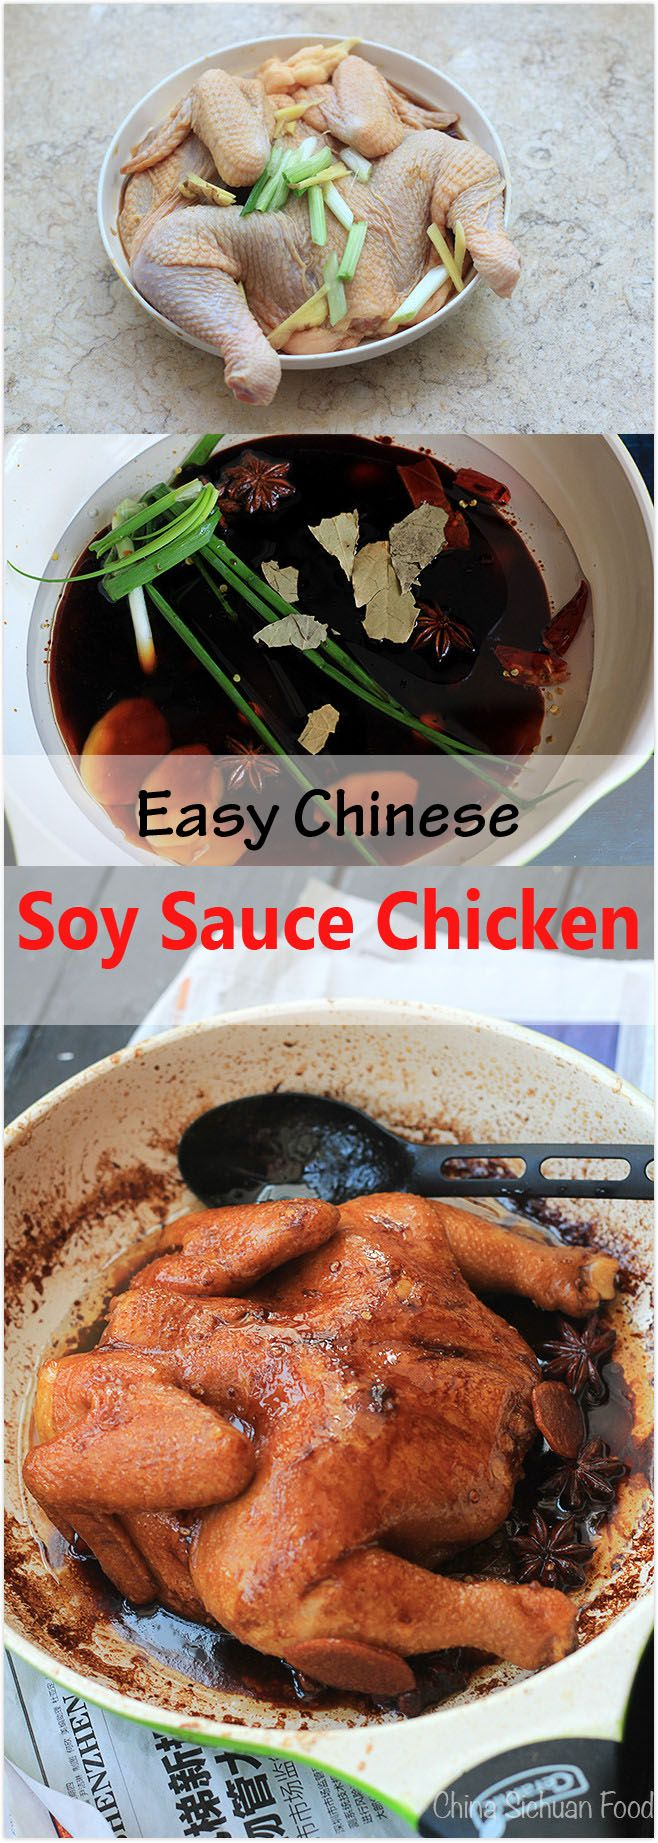 1129 best chinese images on pinterest asian recipes chinese food easy chinese soy sauce chicken chicken storysoy sauce chickenasian food recipeschicken forumfinder Images